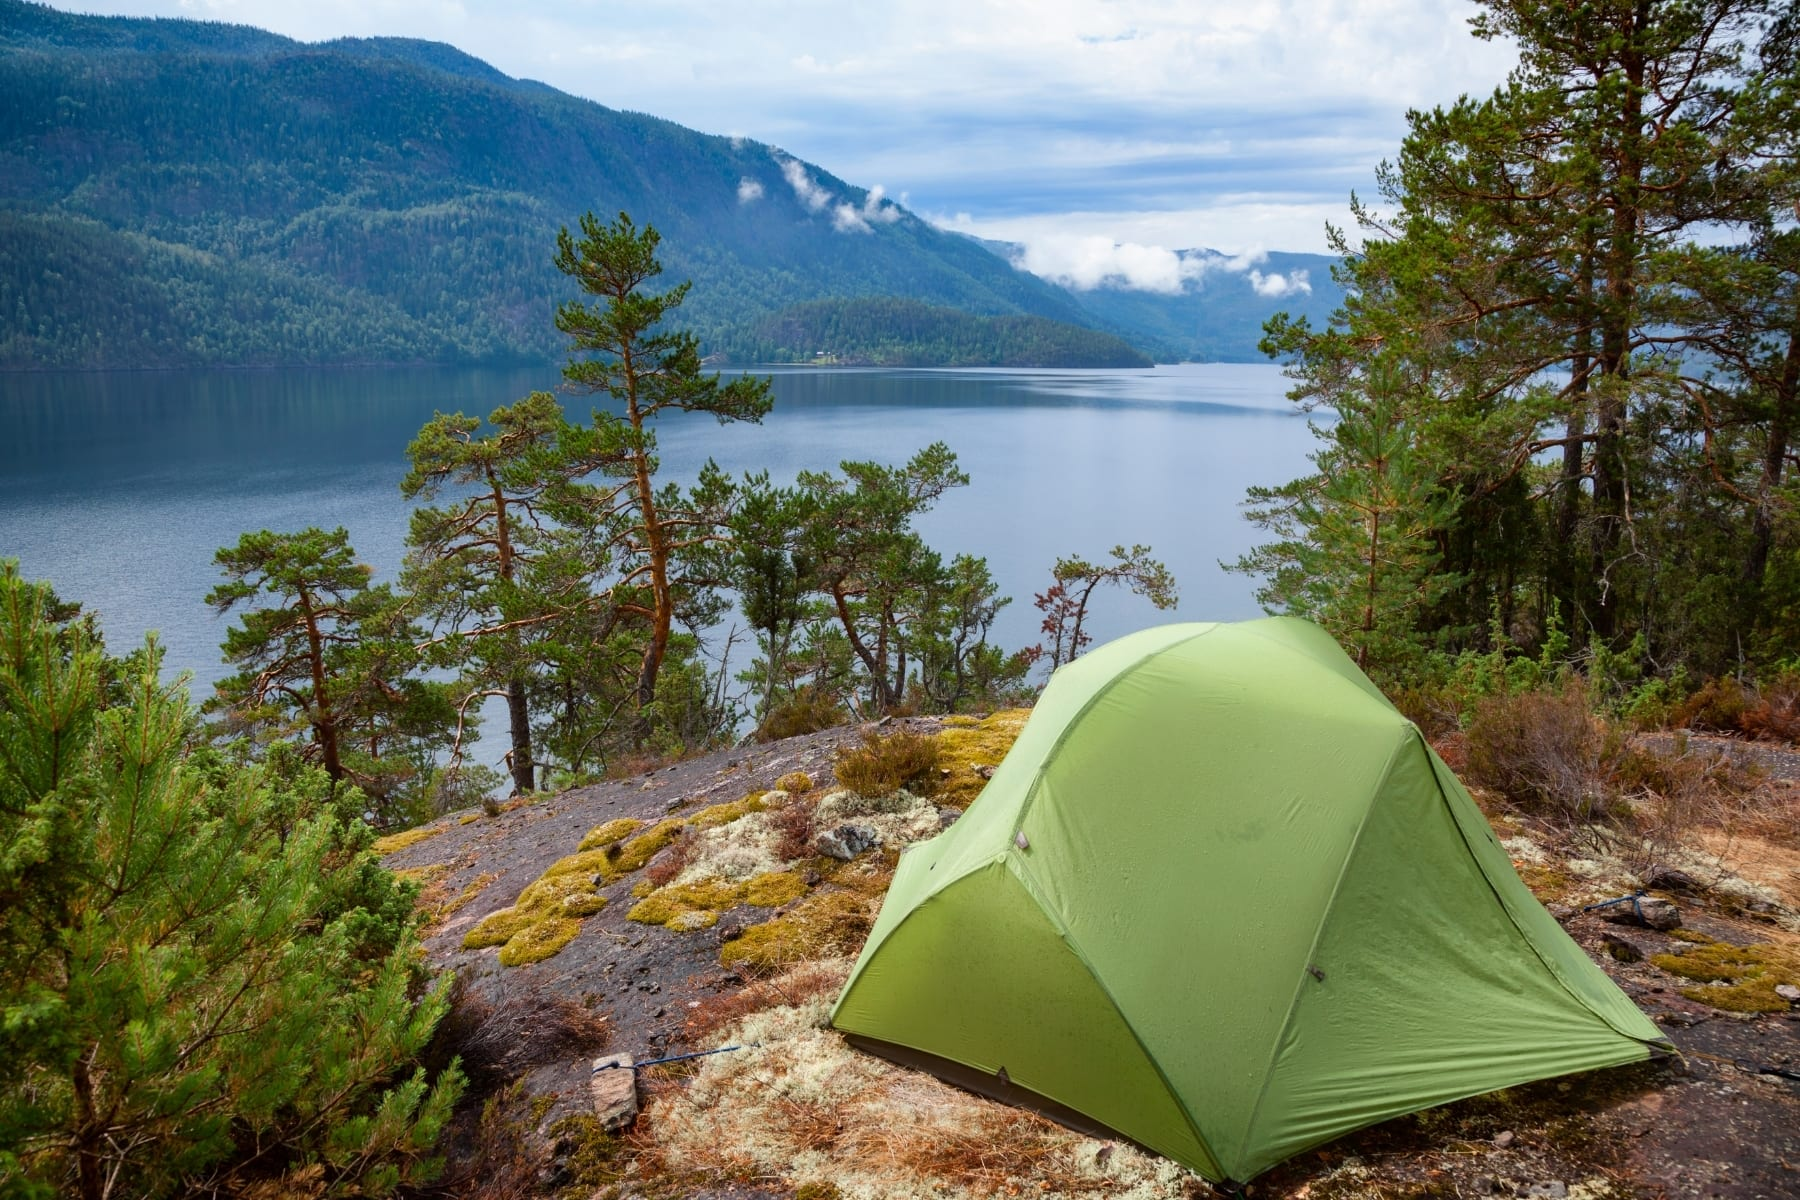 A green tent overlooking a lake and mountains